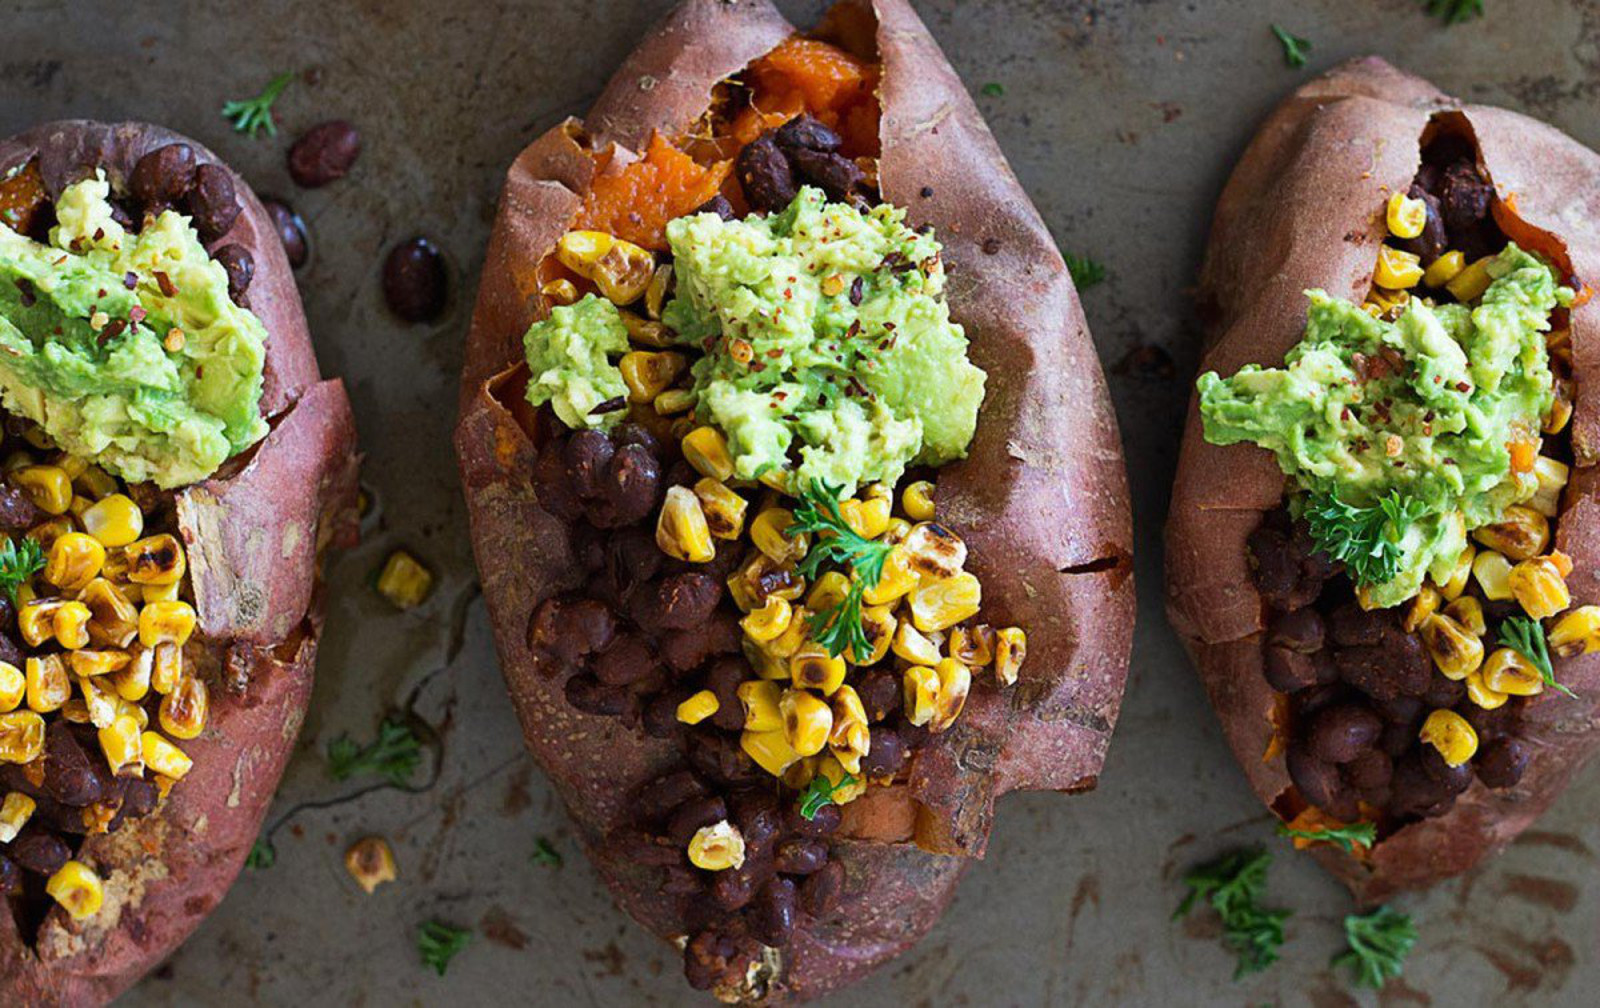 15 Whole Foods-Based Lunches and Dinners That Won't Break the Bank